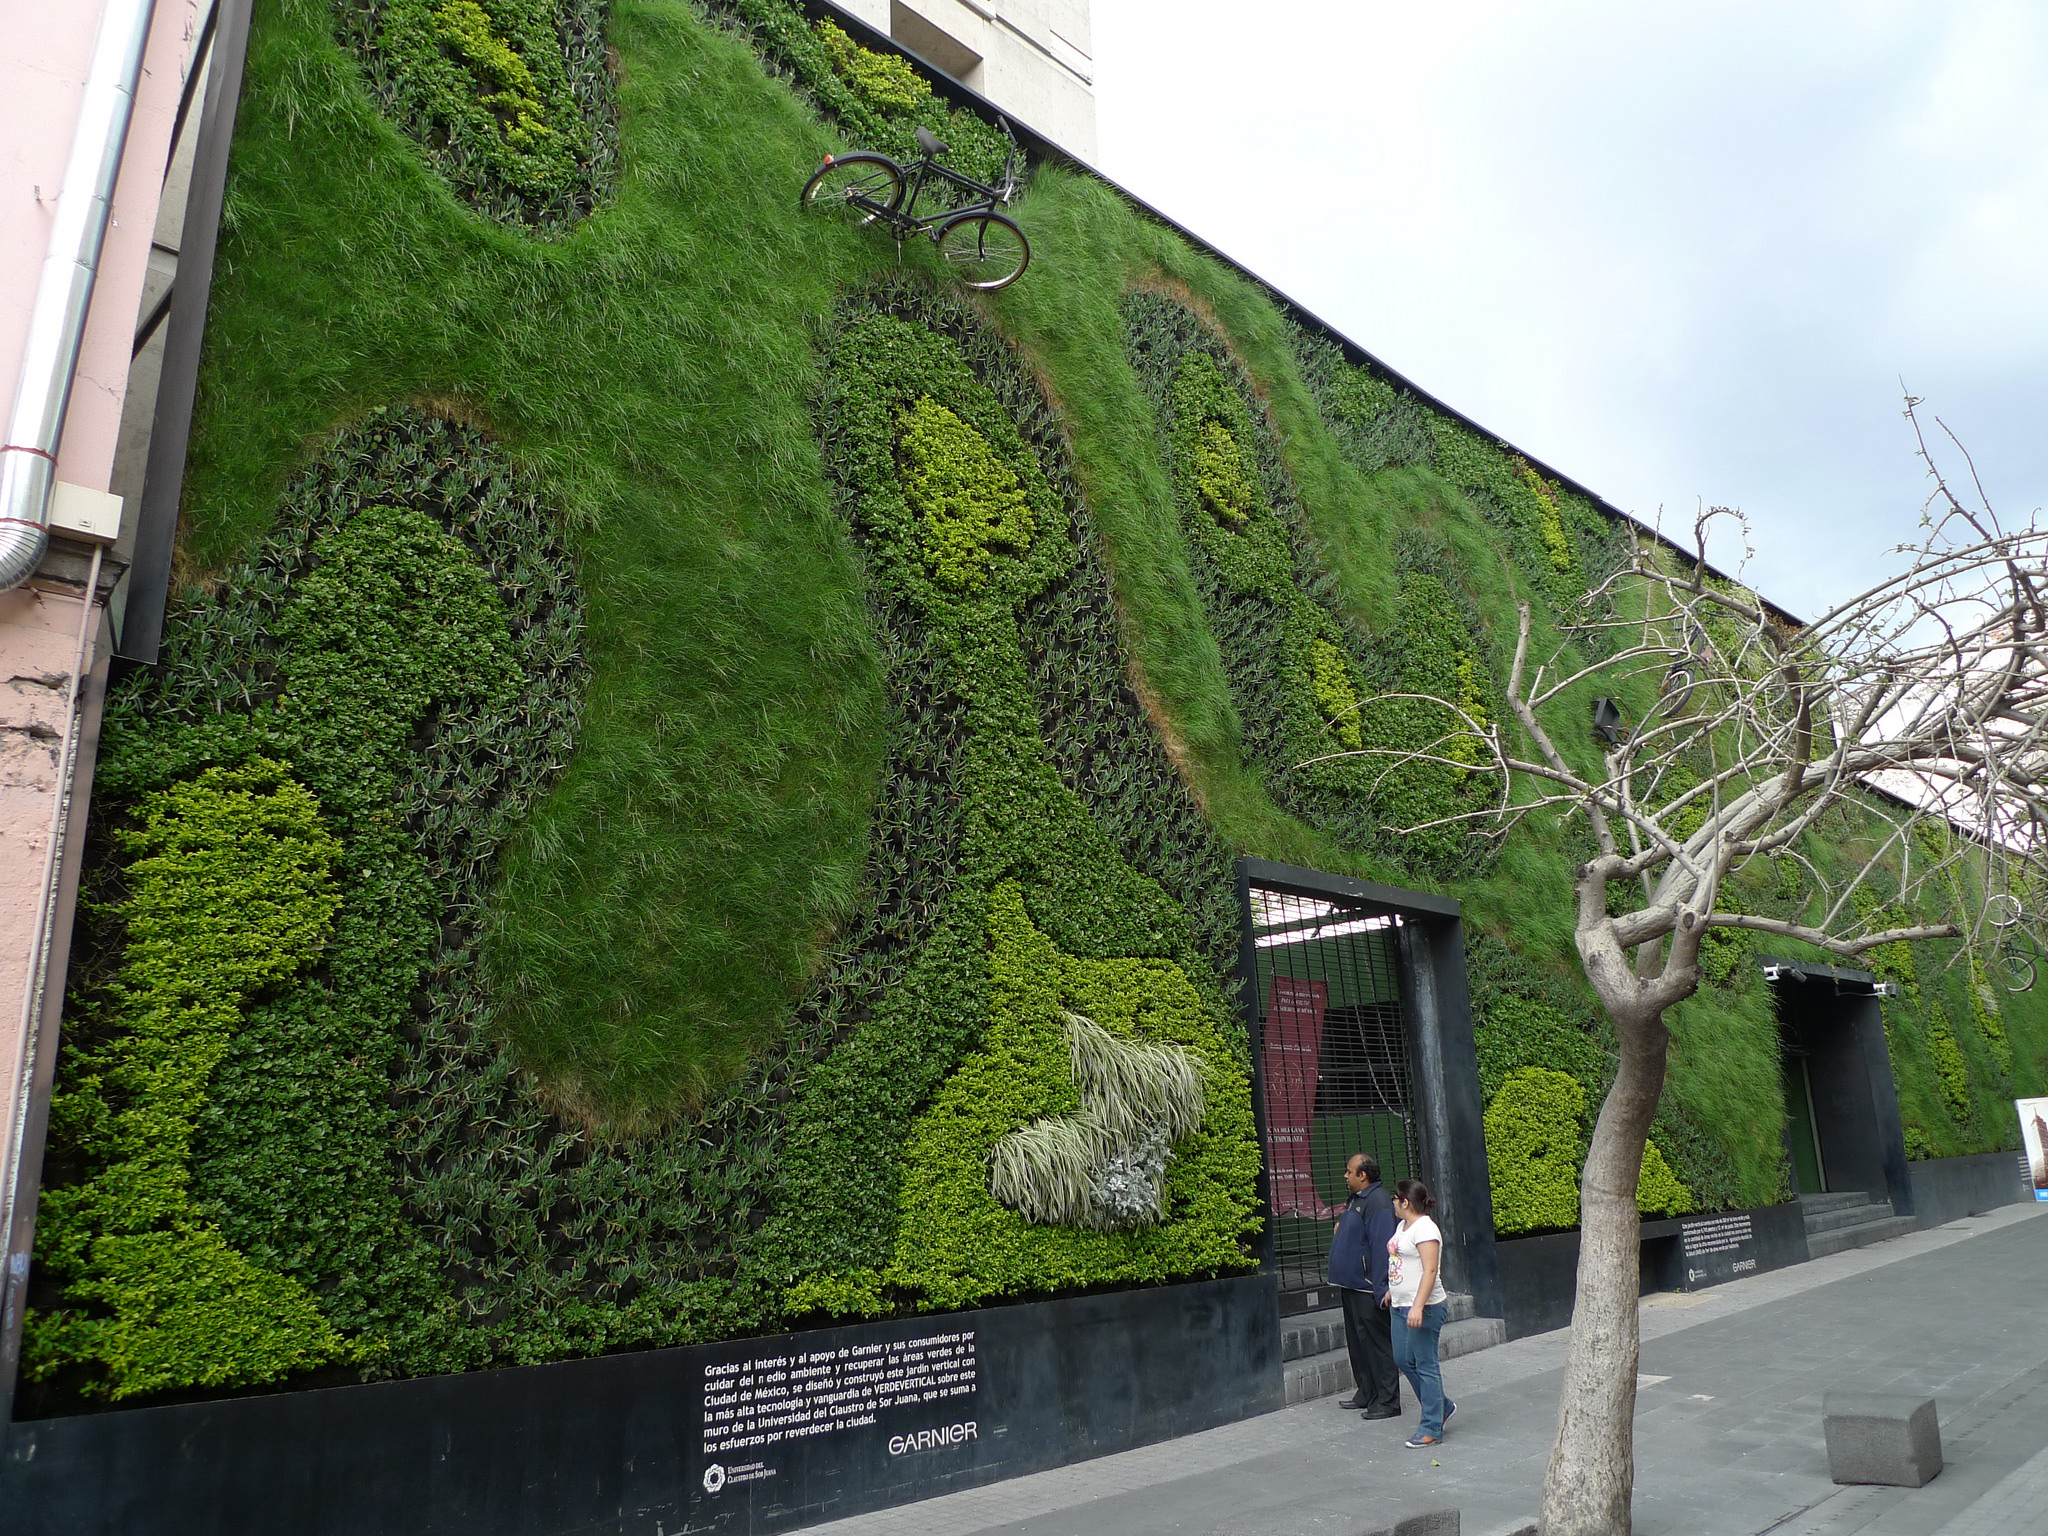 A green wall in Mexico City. You might see similar installations popping up around Krakow as a result of the 2018 Citizens' Budget (phot. Mark Hogan)